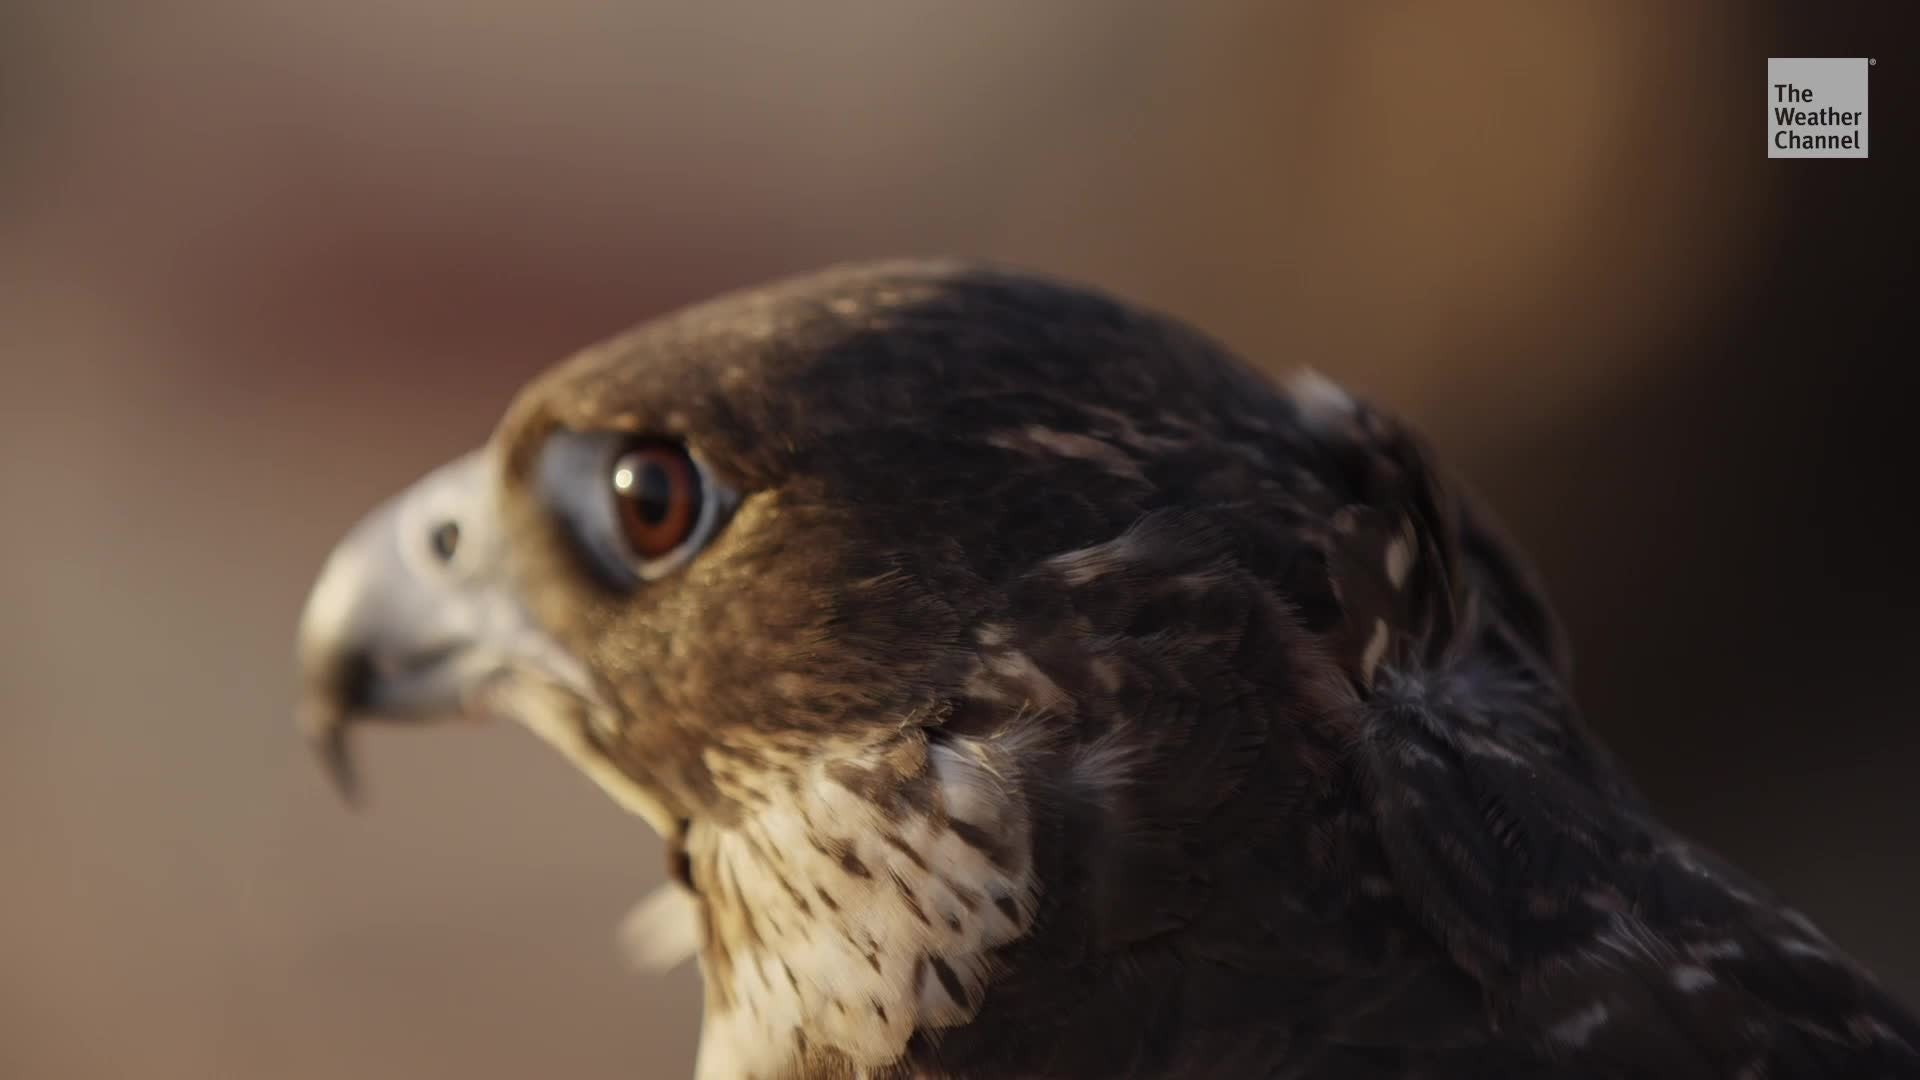 Microplastics Found in Birds of Prey For First Time